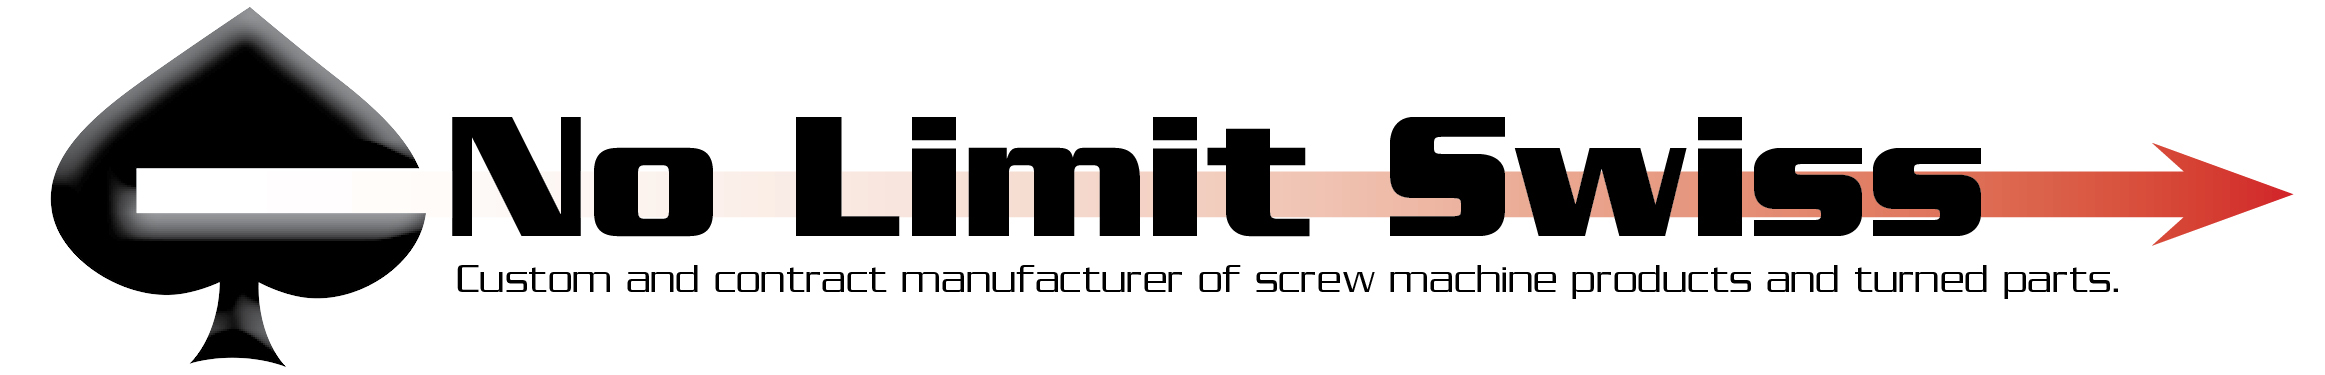 No Limit Swiss in Mentor, OH. CNC machining job shop.